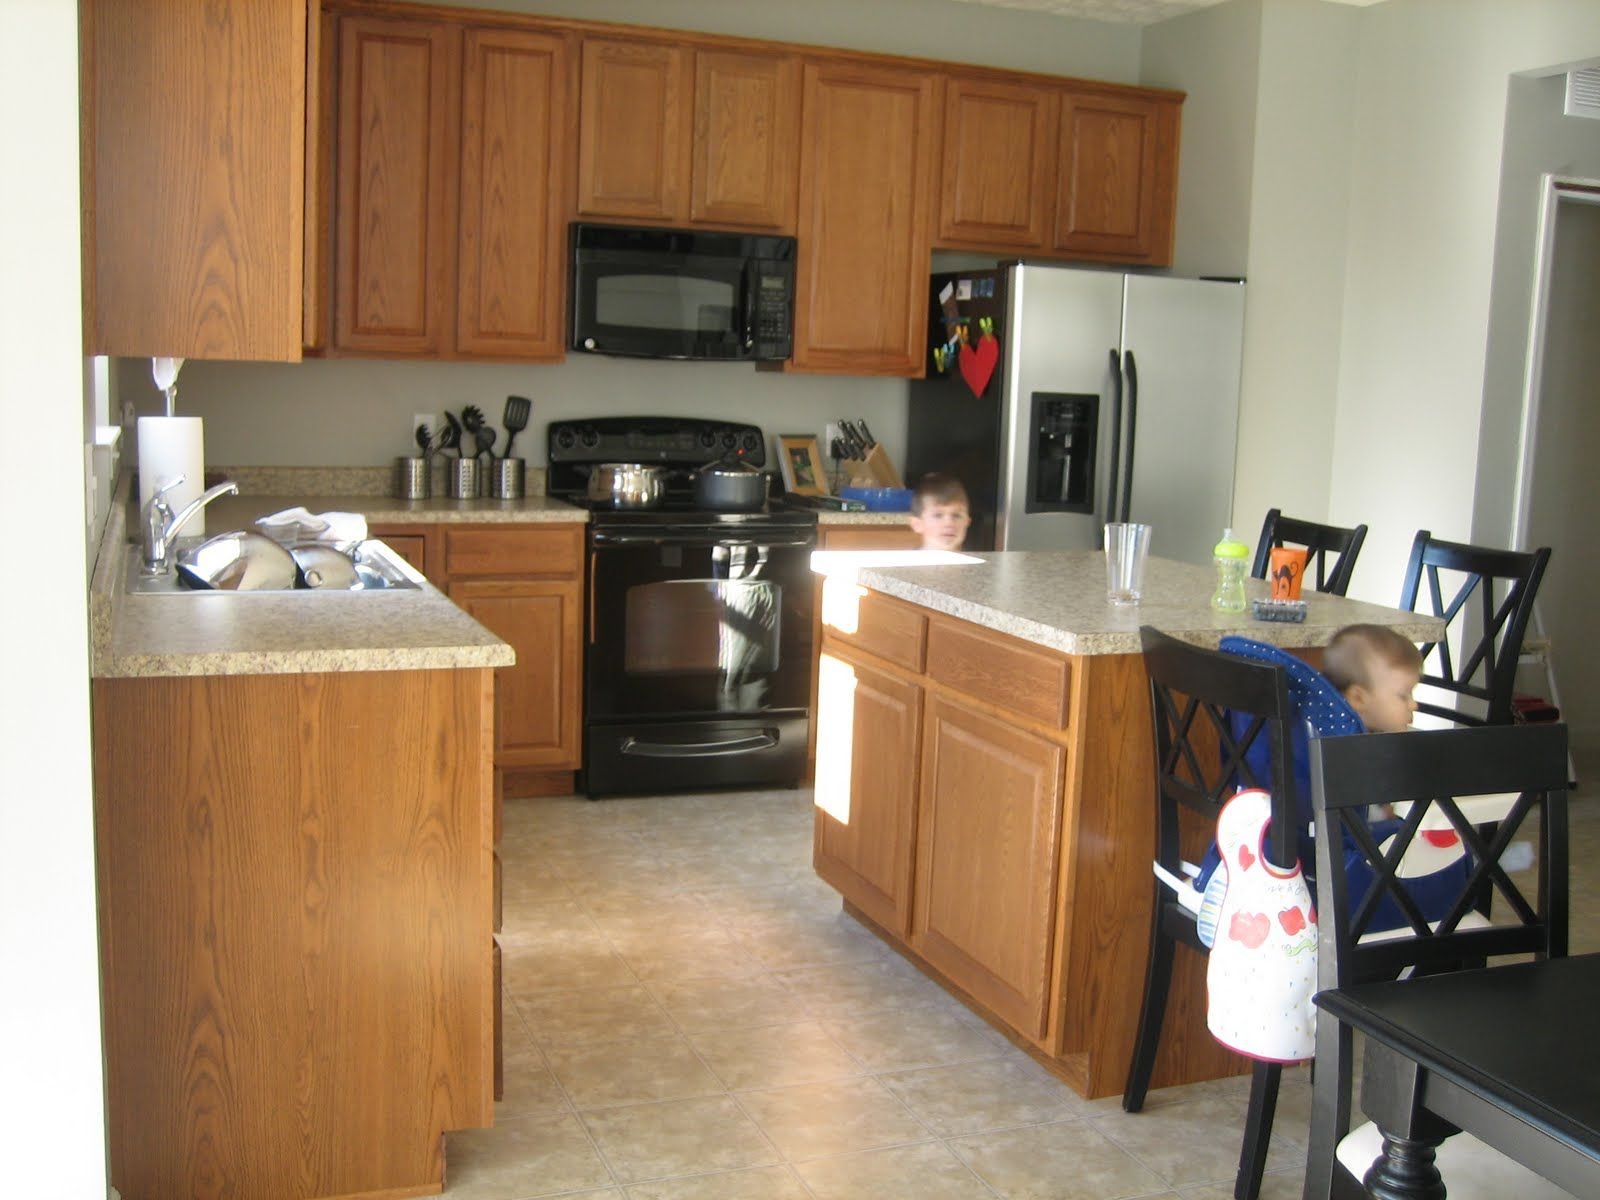 Kitchen Quartz Countertops With Oak Cabinets Kitchen Island With